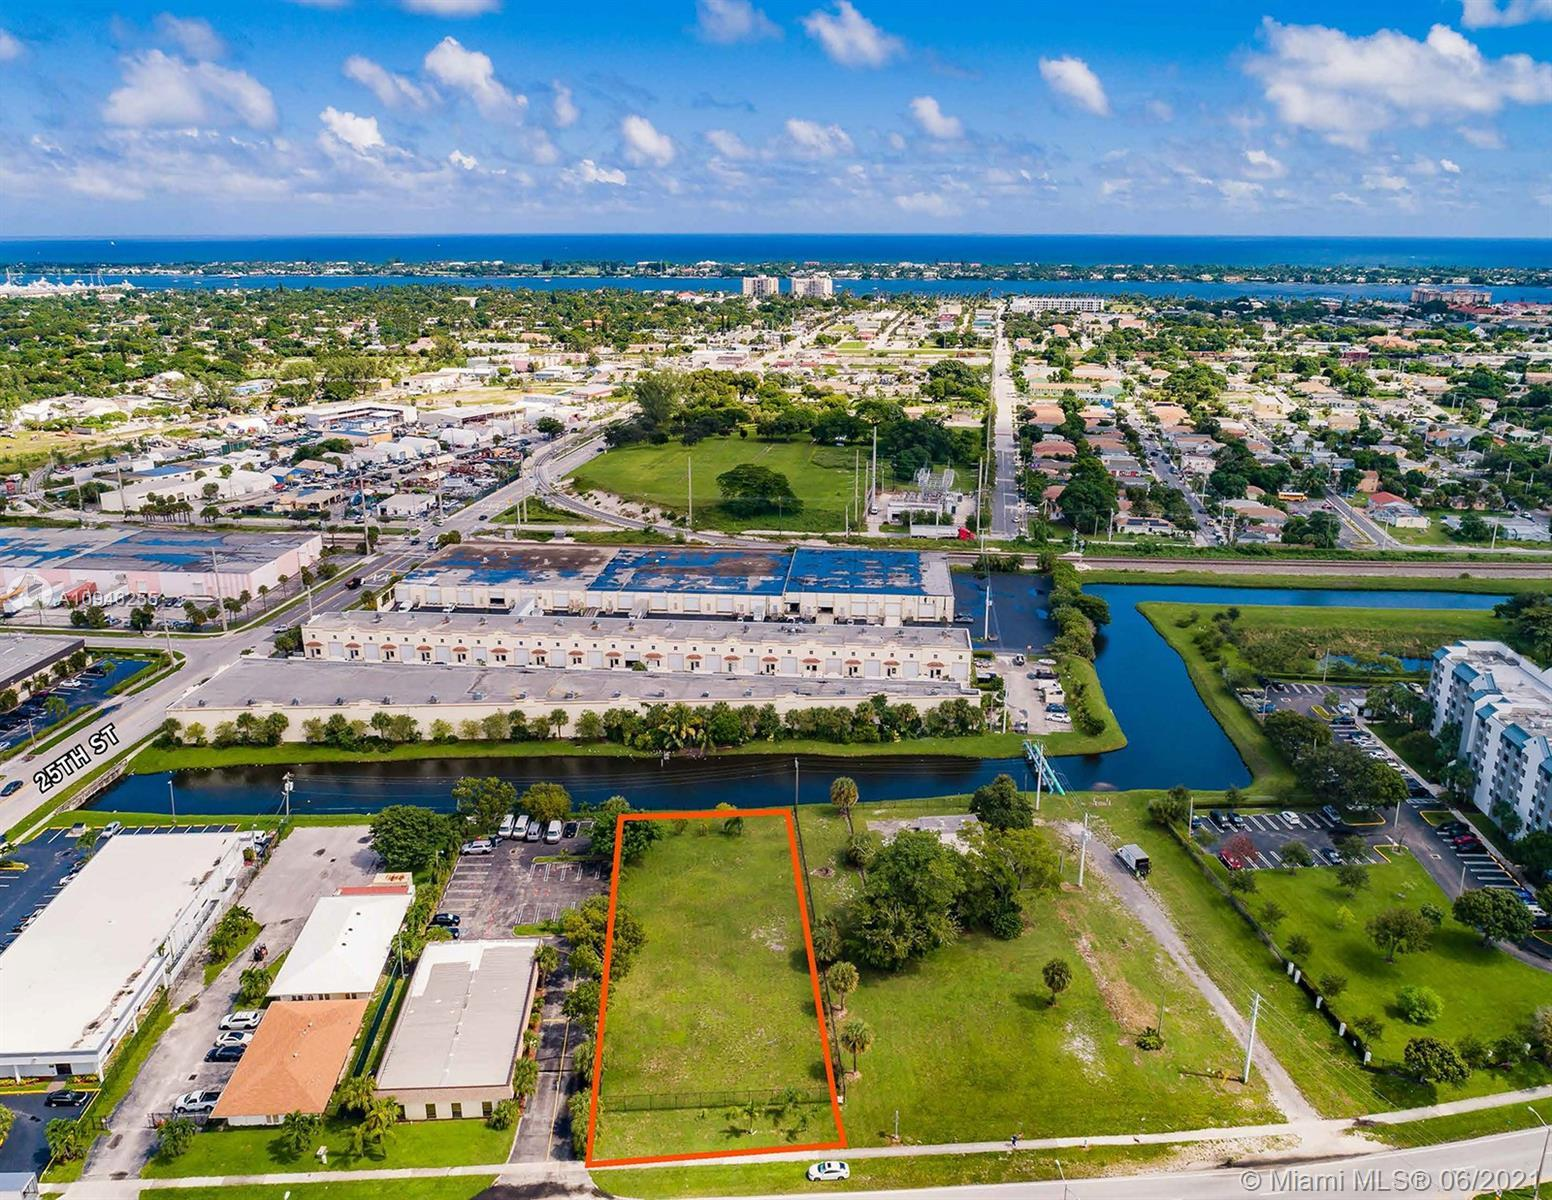 Exclusively presenting for sale a prime vacant lot of 28,400 SF at 2460 N Australian Ave in West Pal